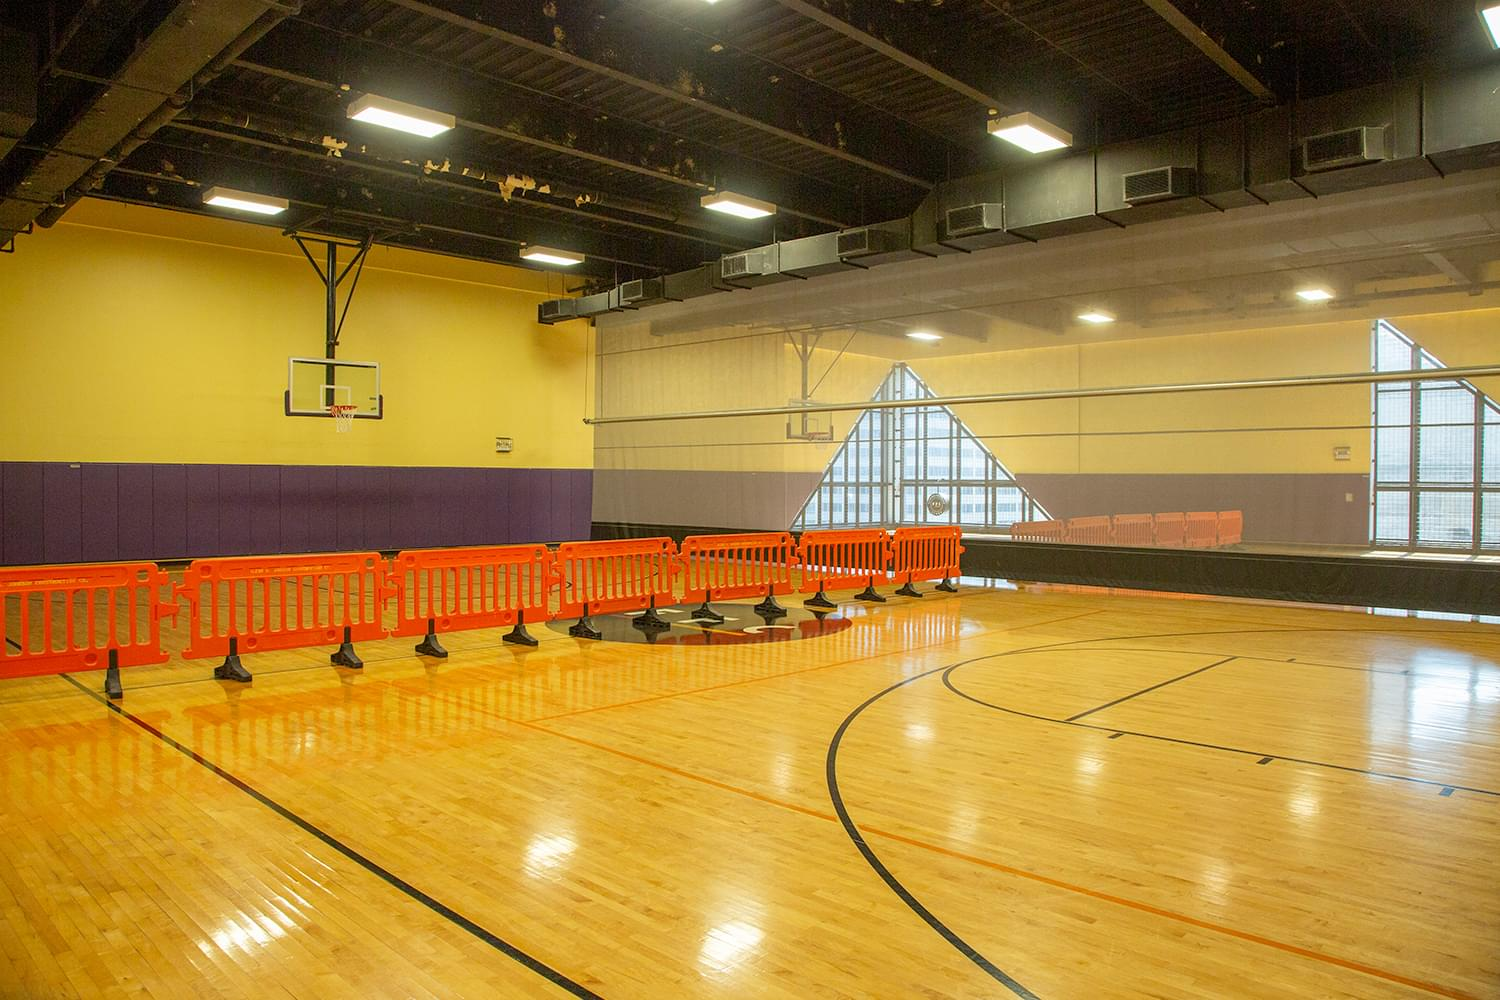 FFC Union Station Basketball Court